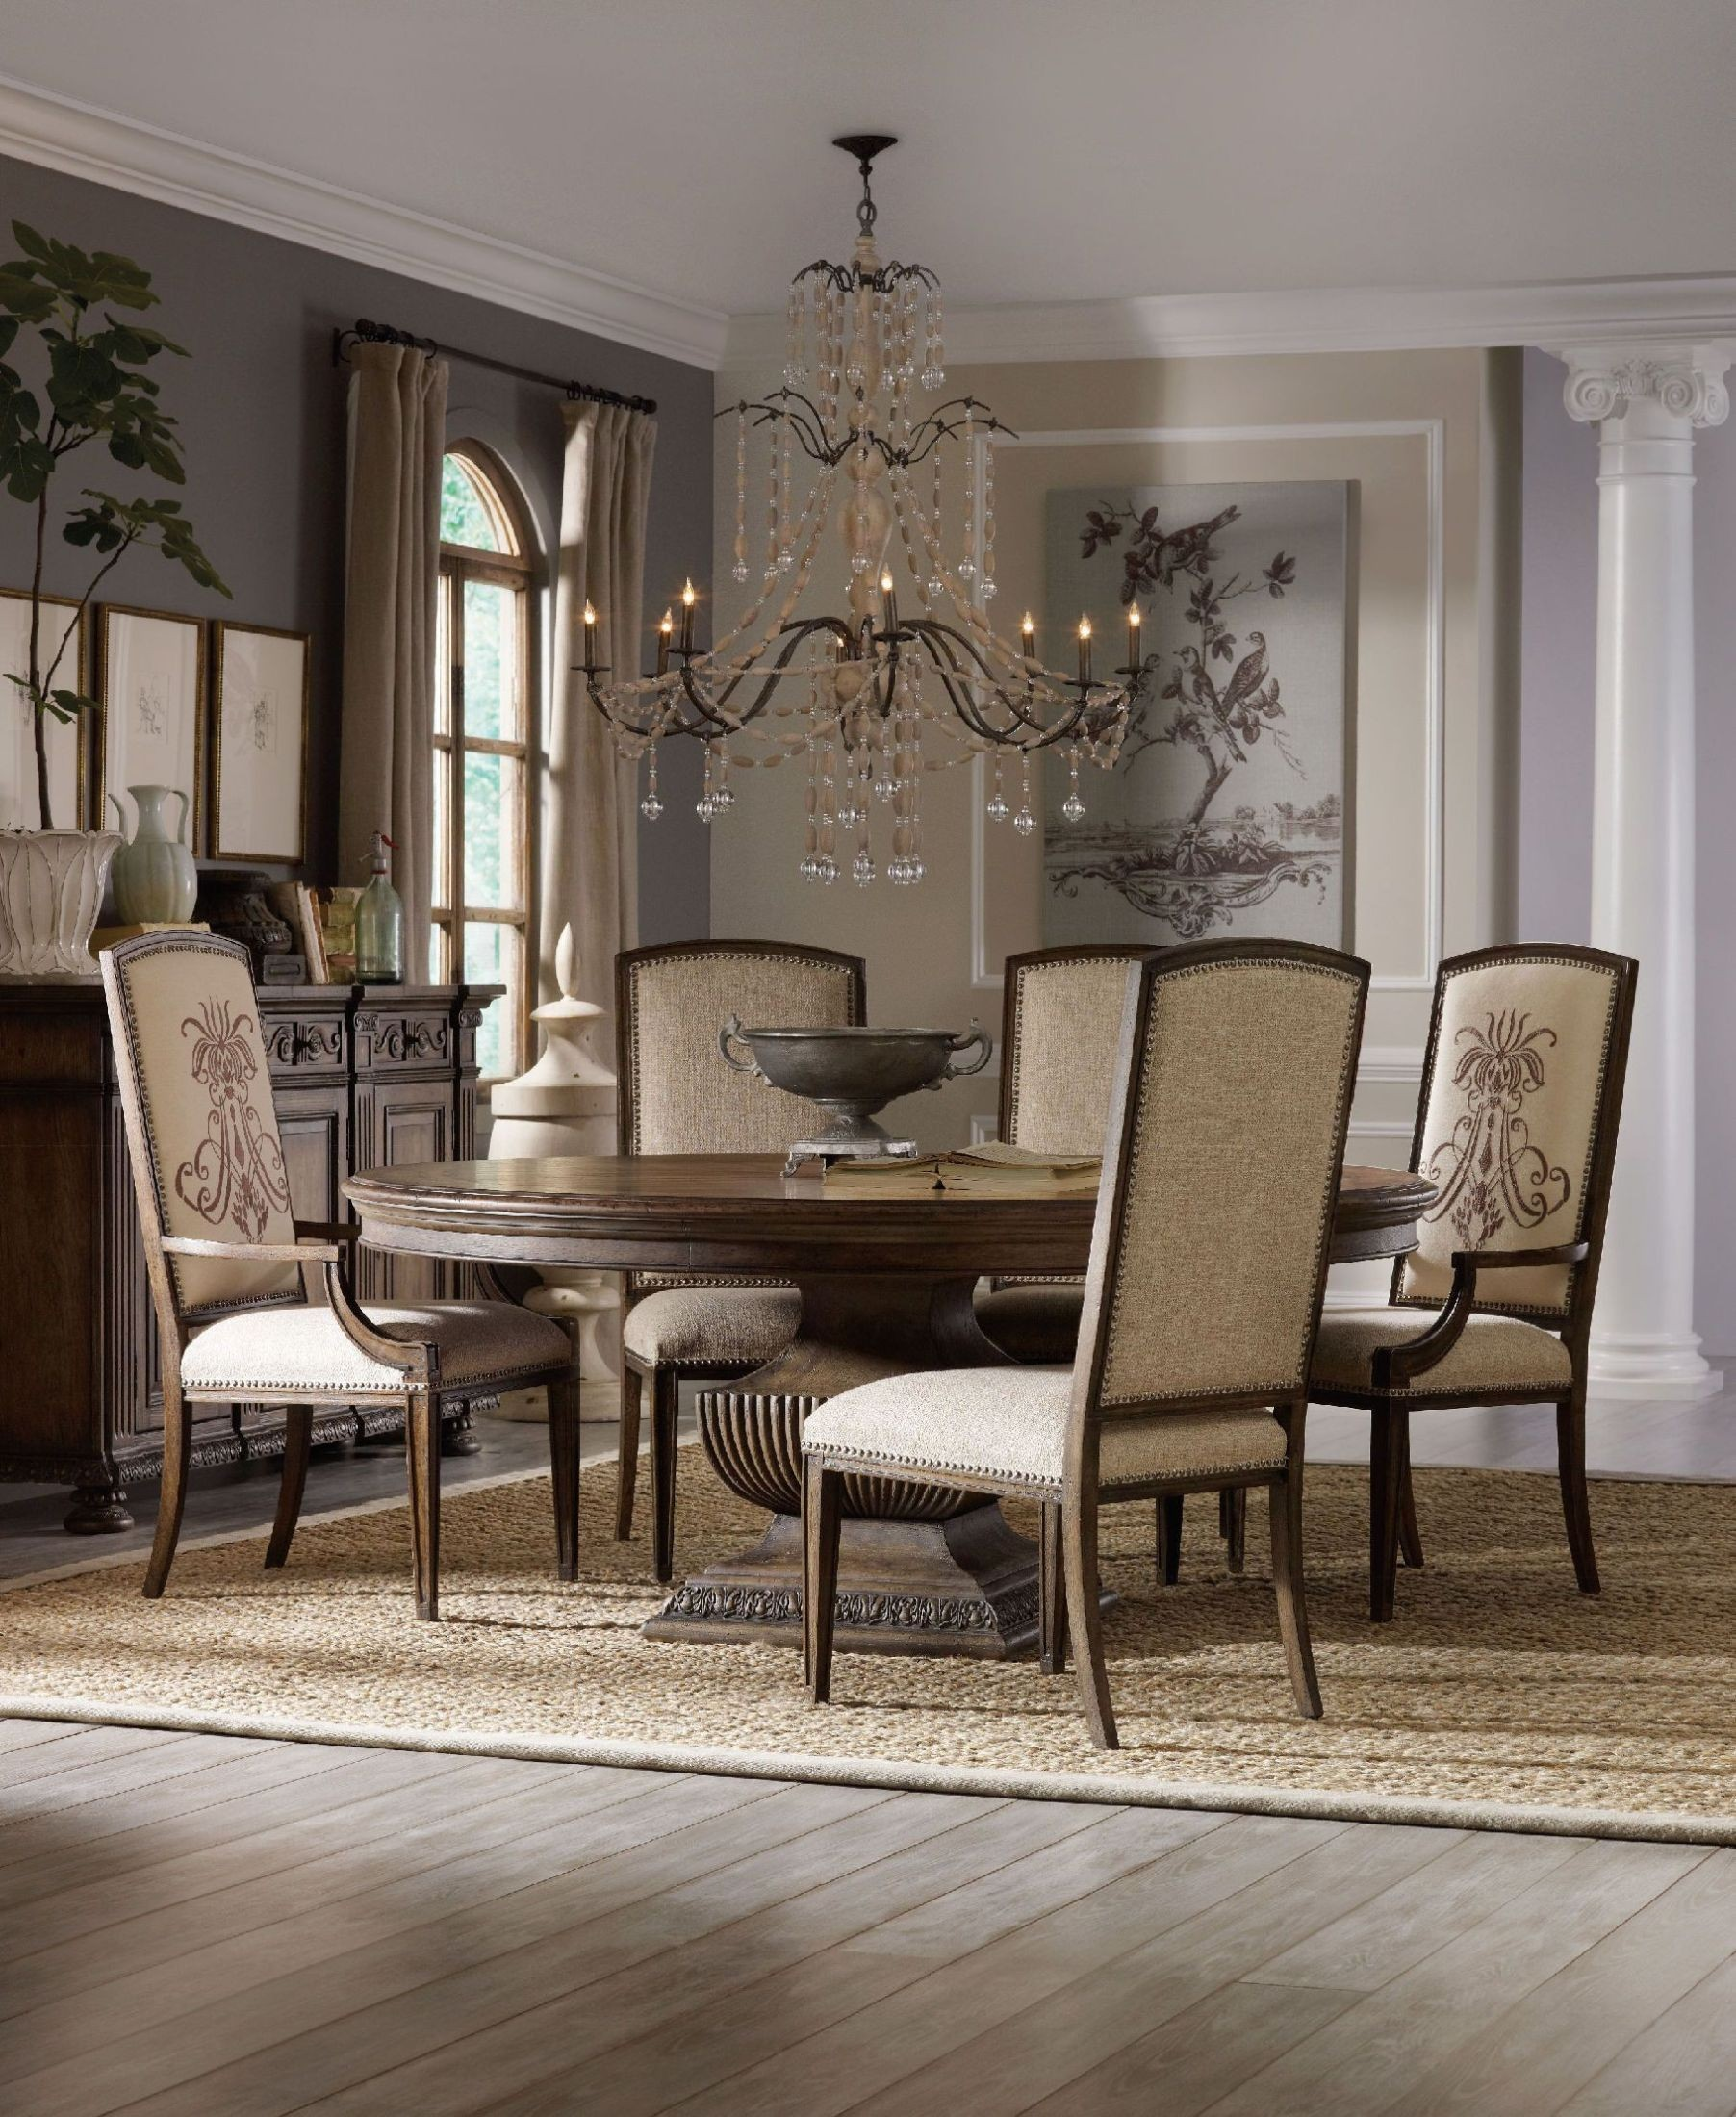 "Round Dining Room Sets For 6: Rhapsody Brown 60"" Round Dining Room Set From Hooker"